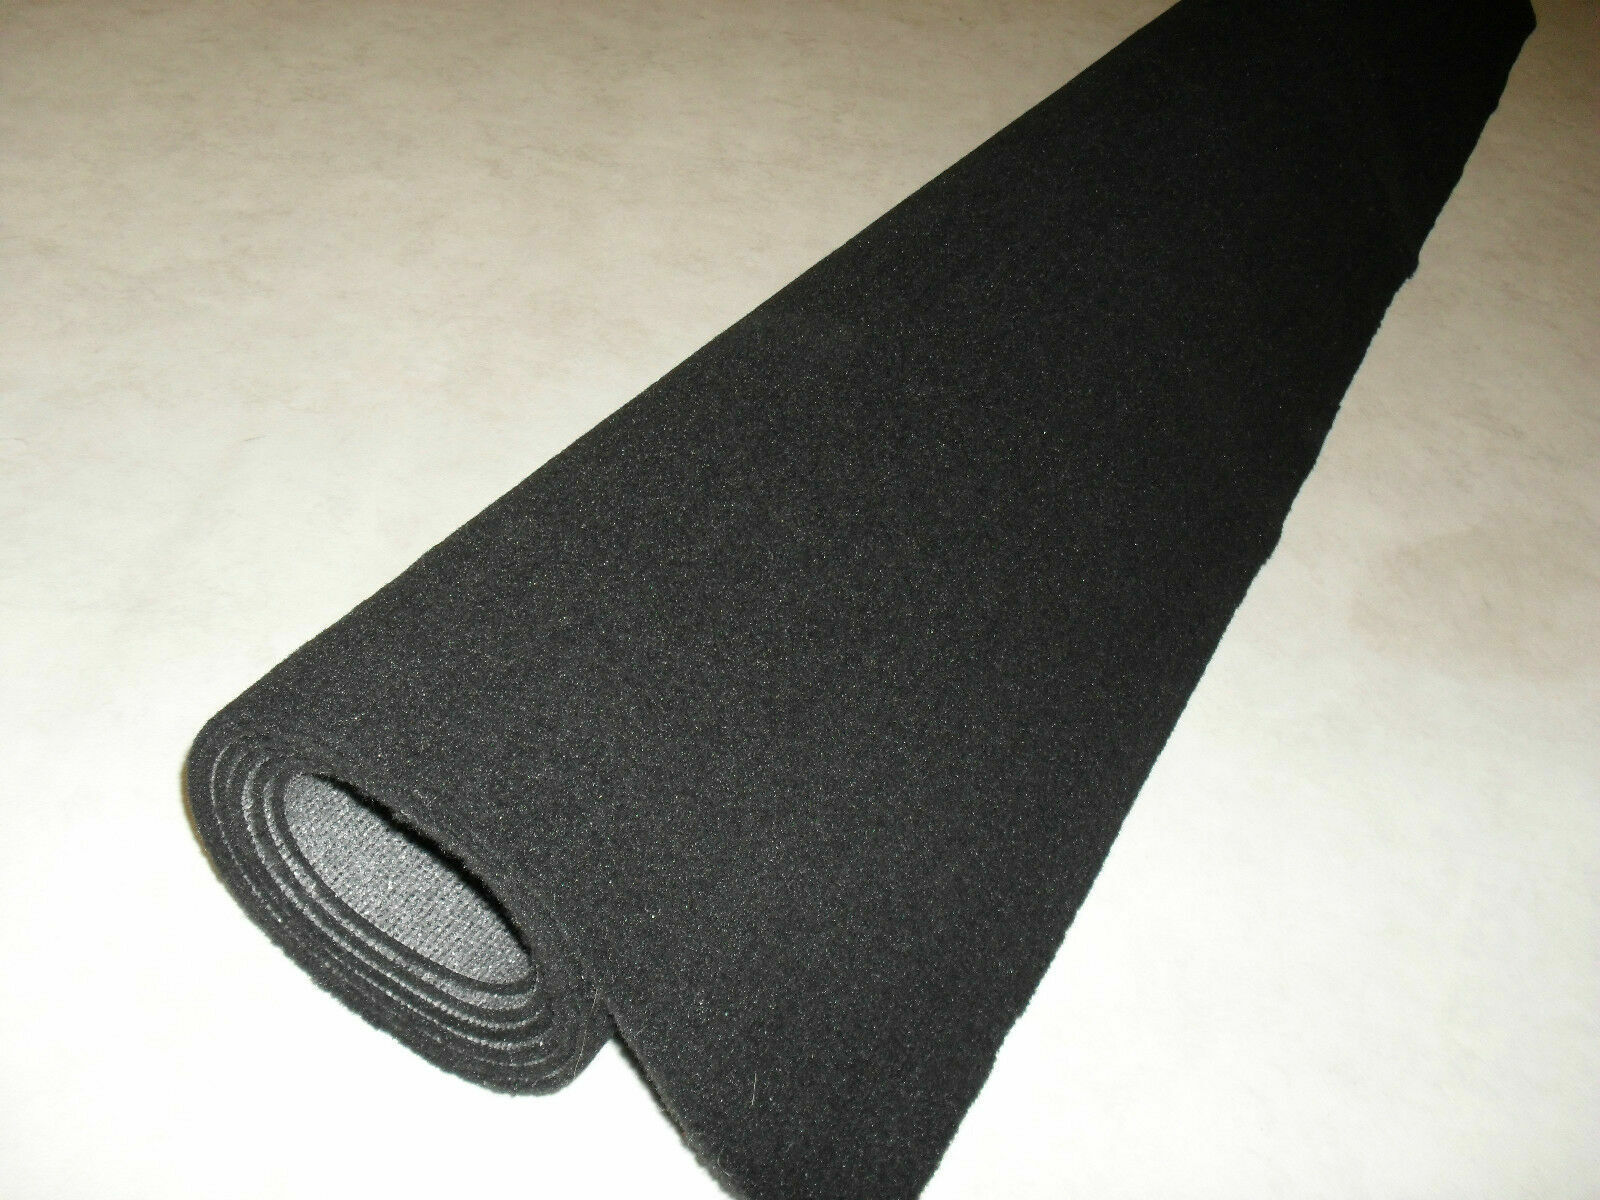 Car Parts - CAR CARPET SHEETS in Anthracite/Black Luxury Quality